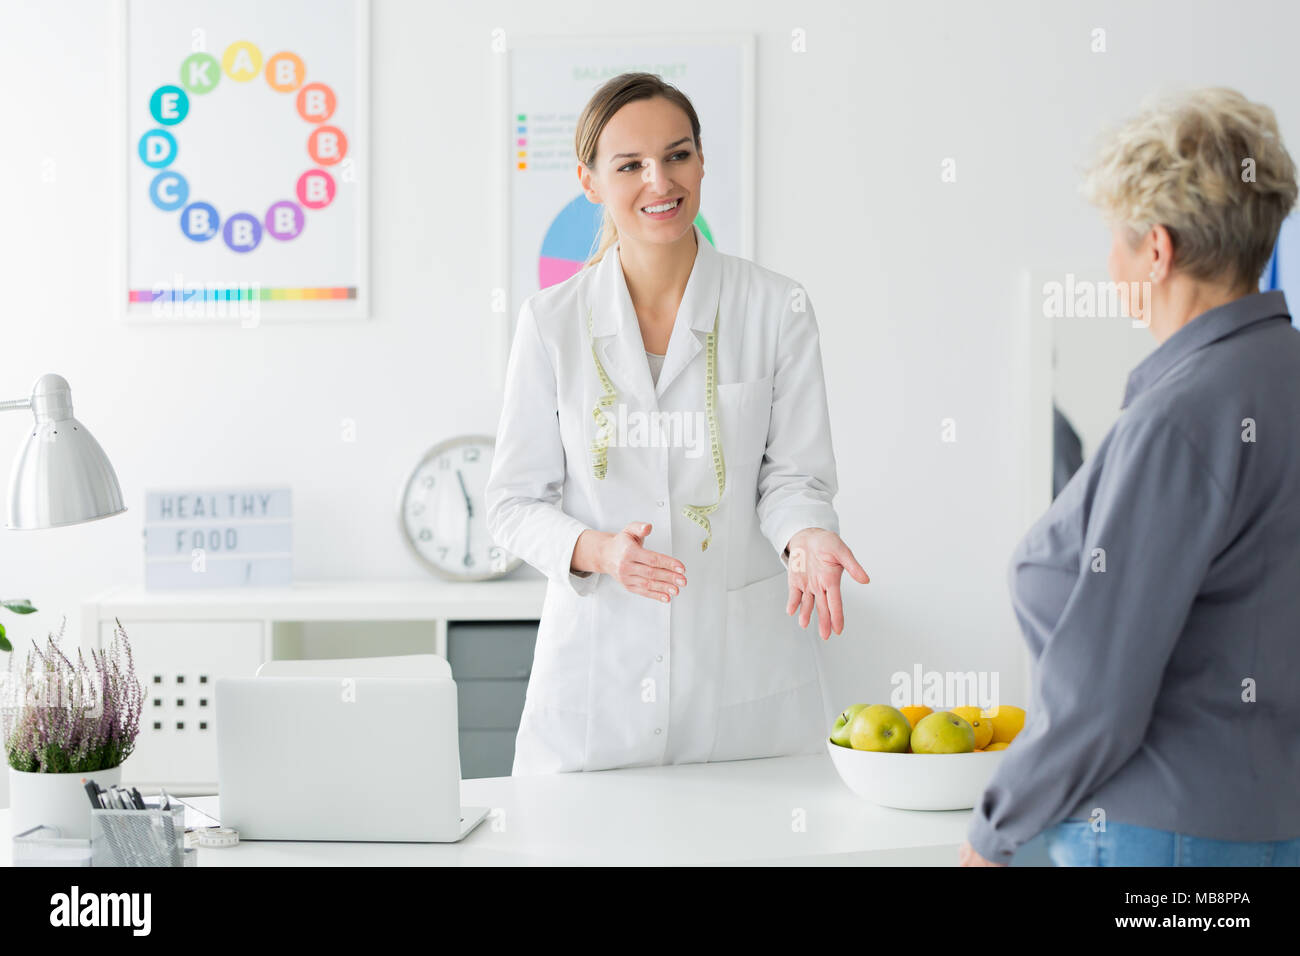 Dietician with measuring tape welcoming her elderly client at an appointment to plan weight loss - Stock Image